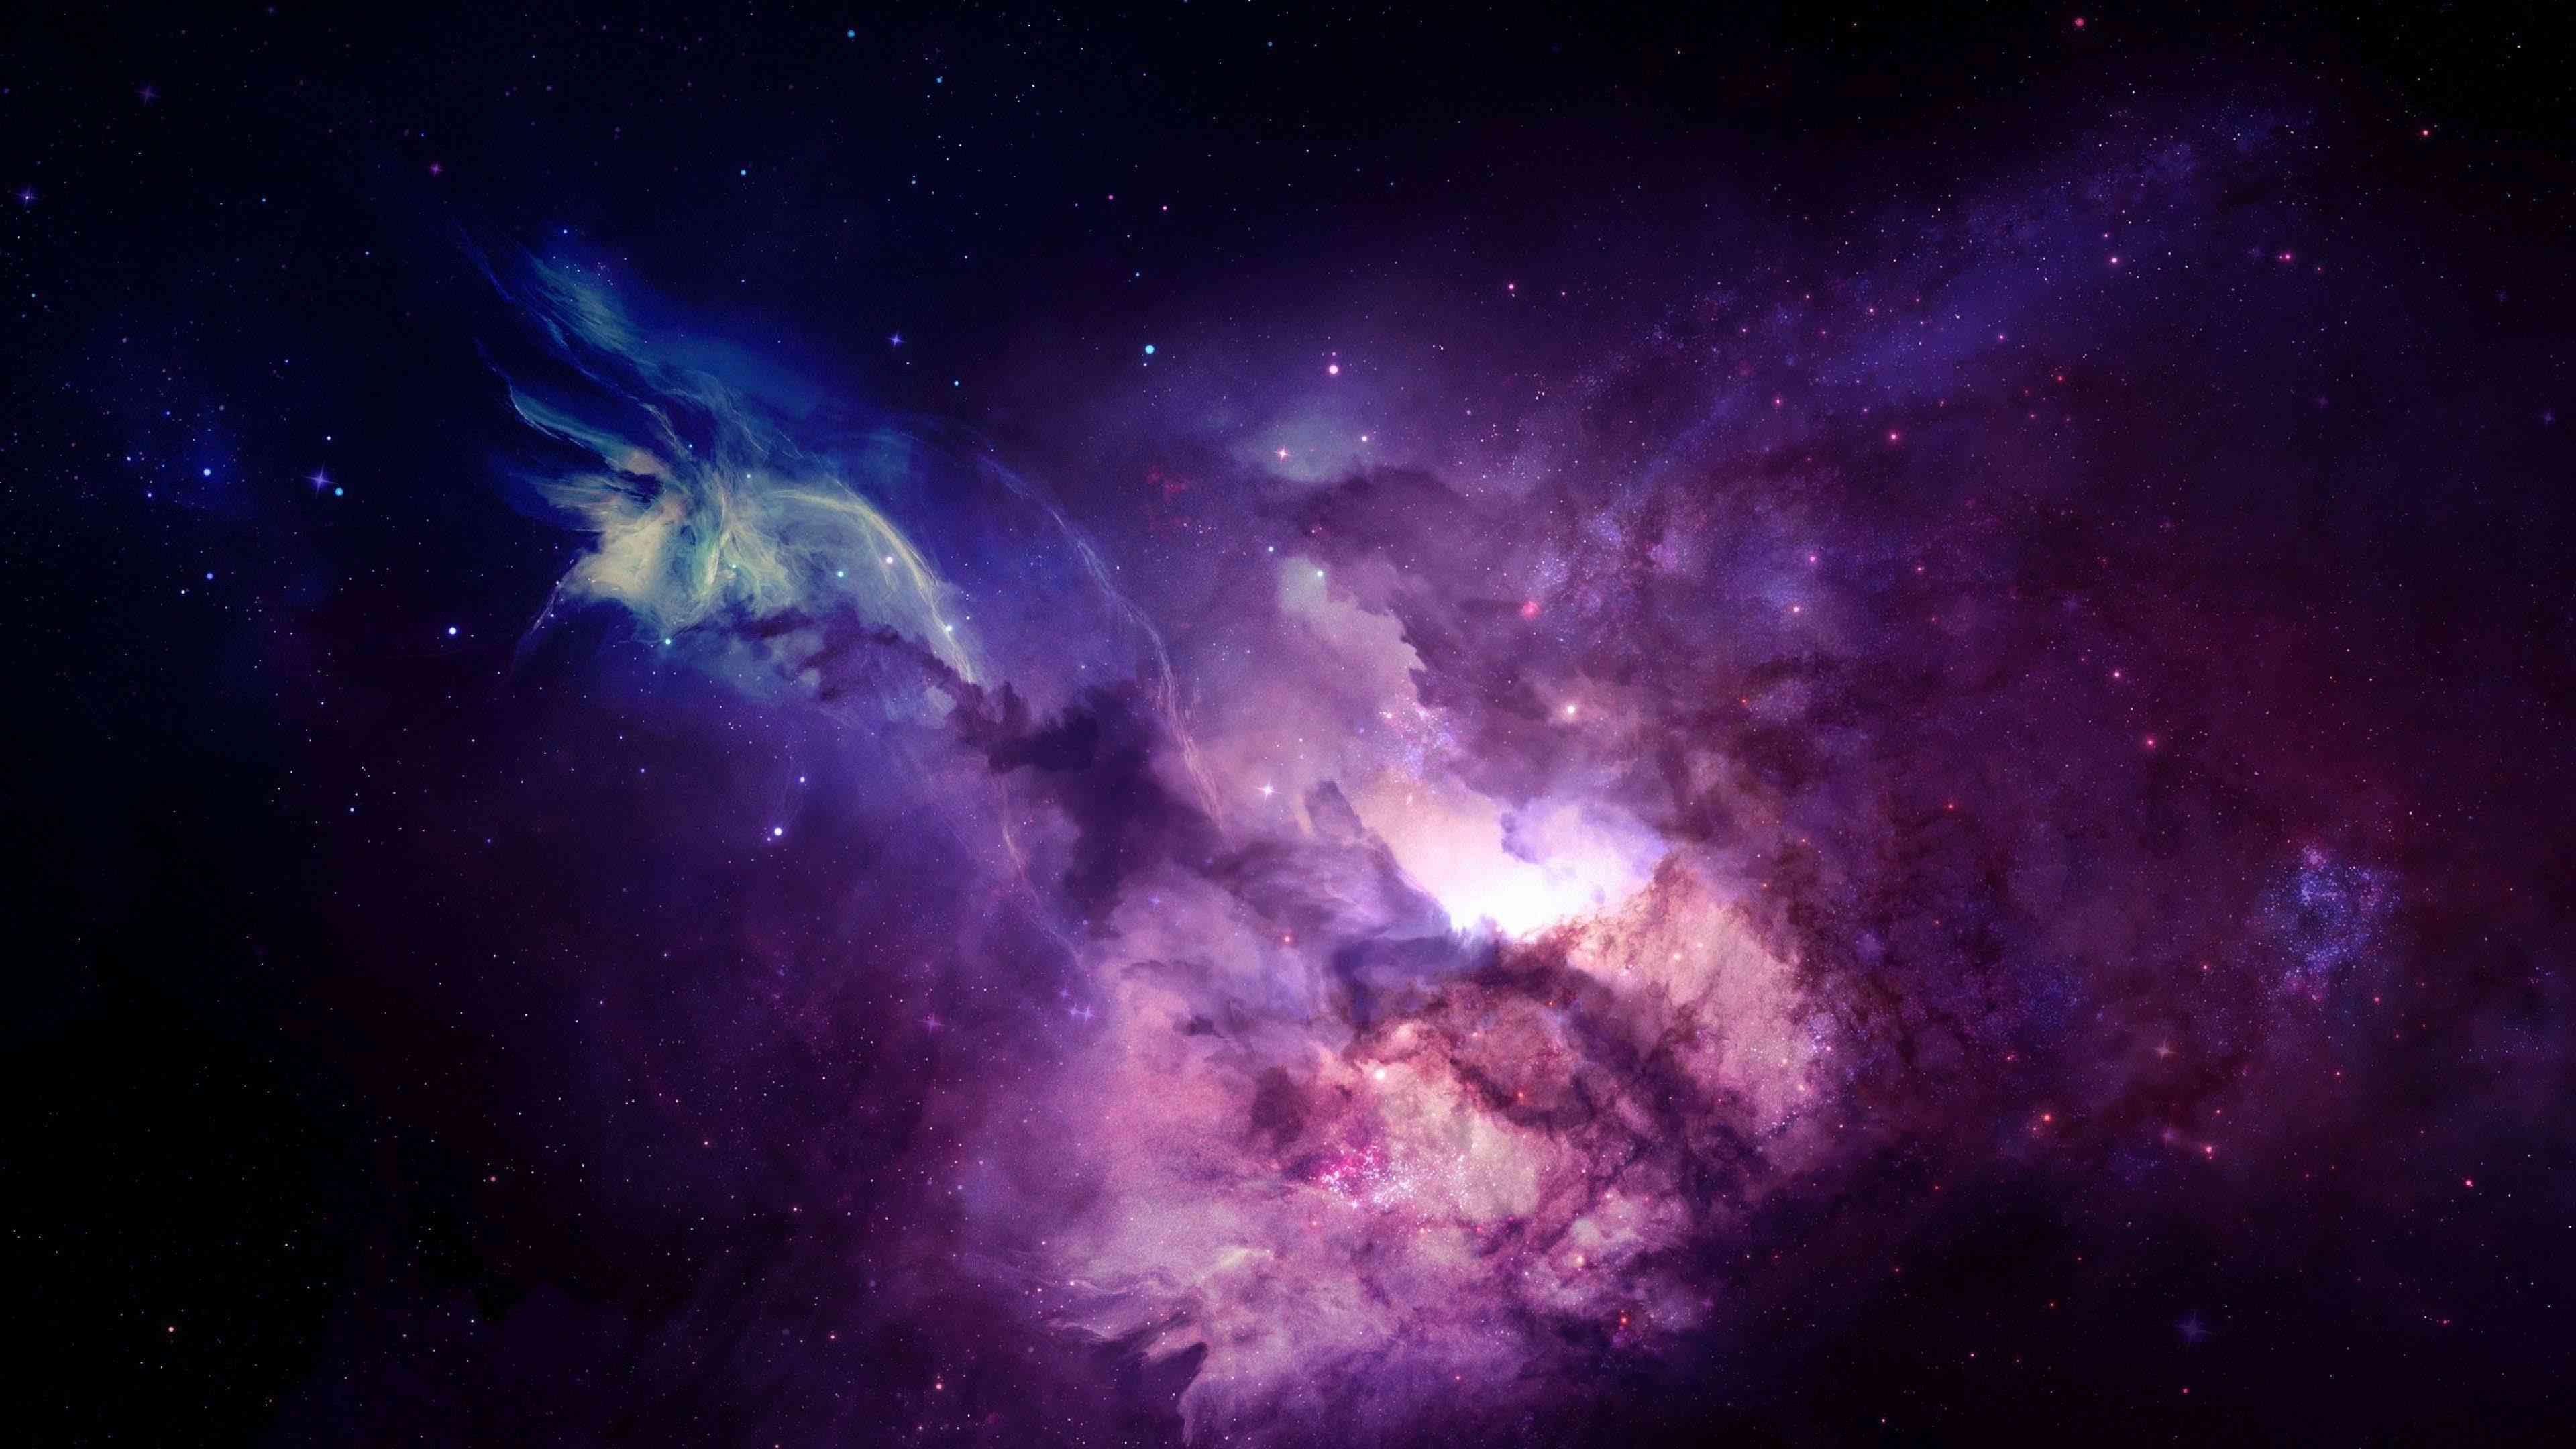 4k space wallpaper